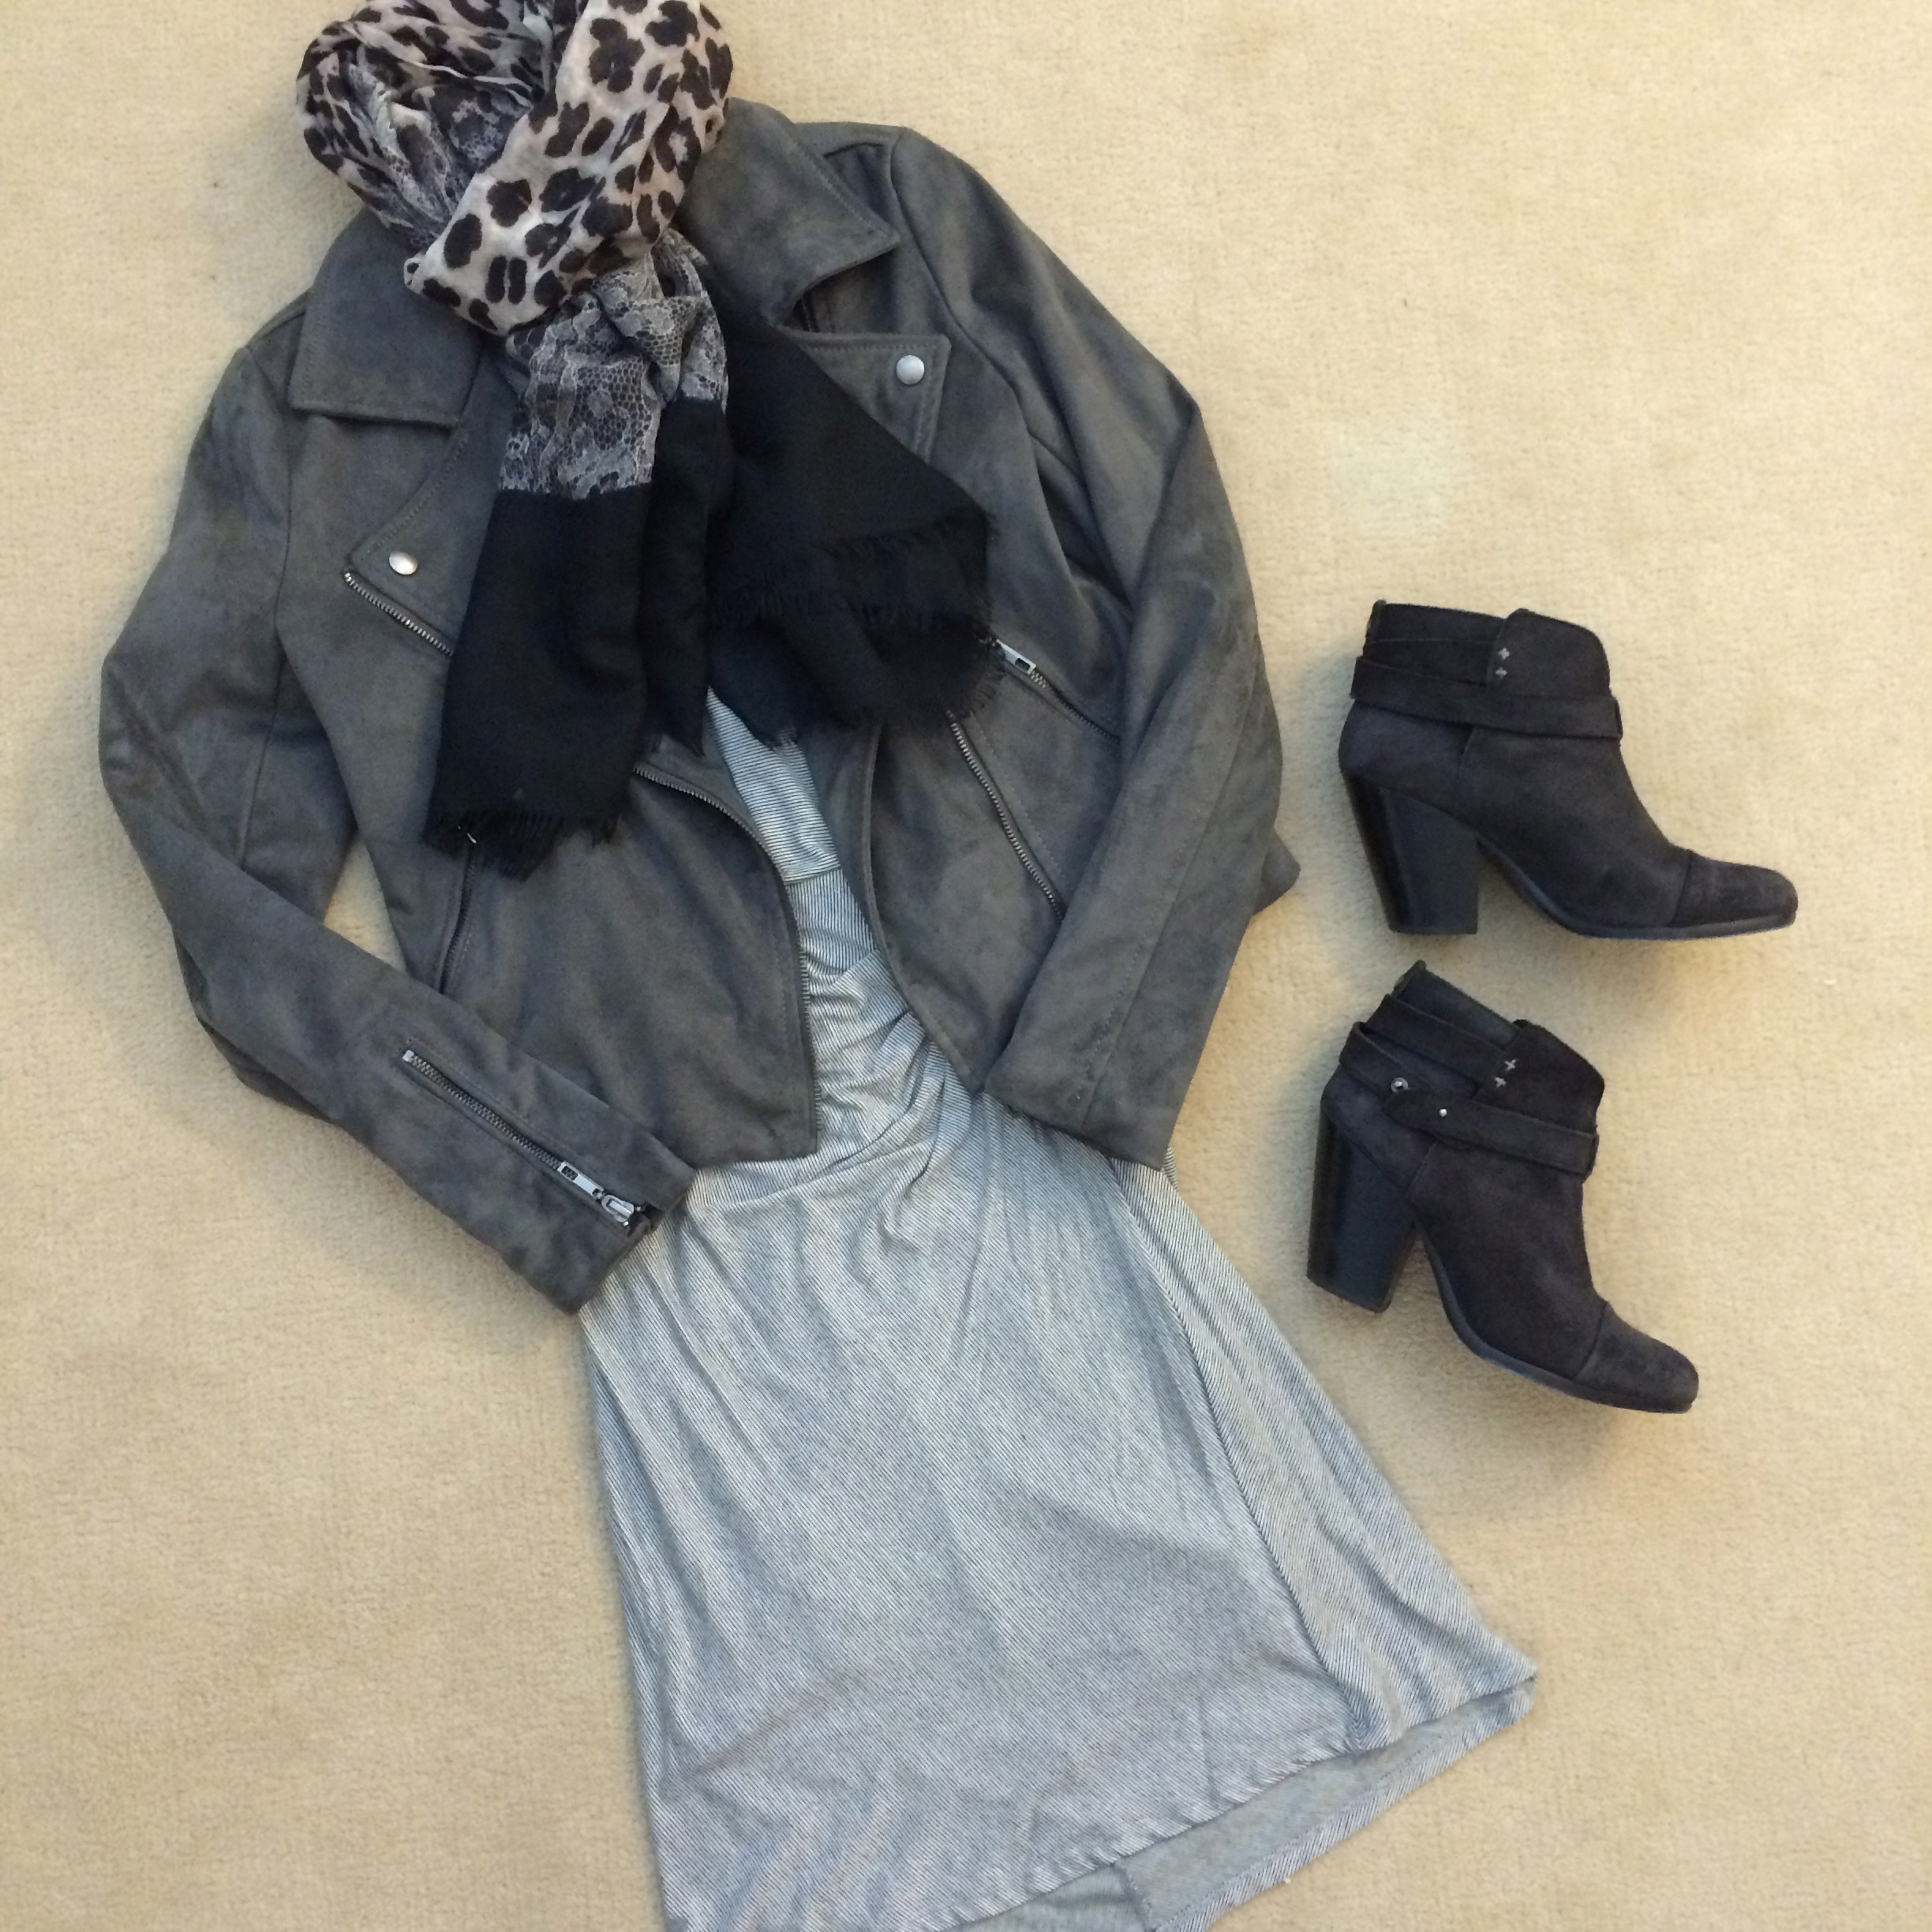 knit dress and suede jacket.jpg